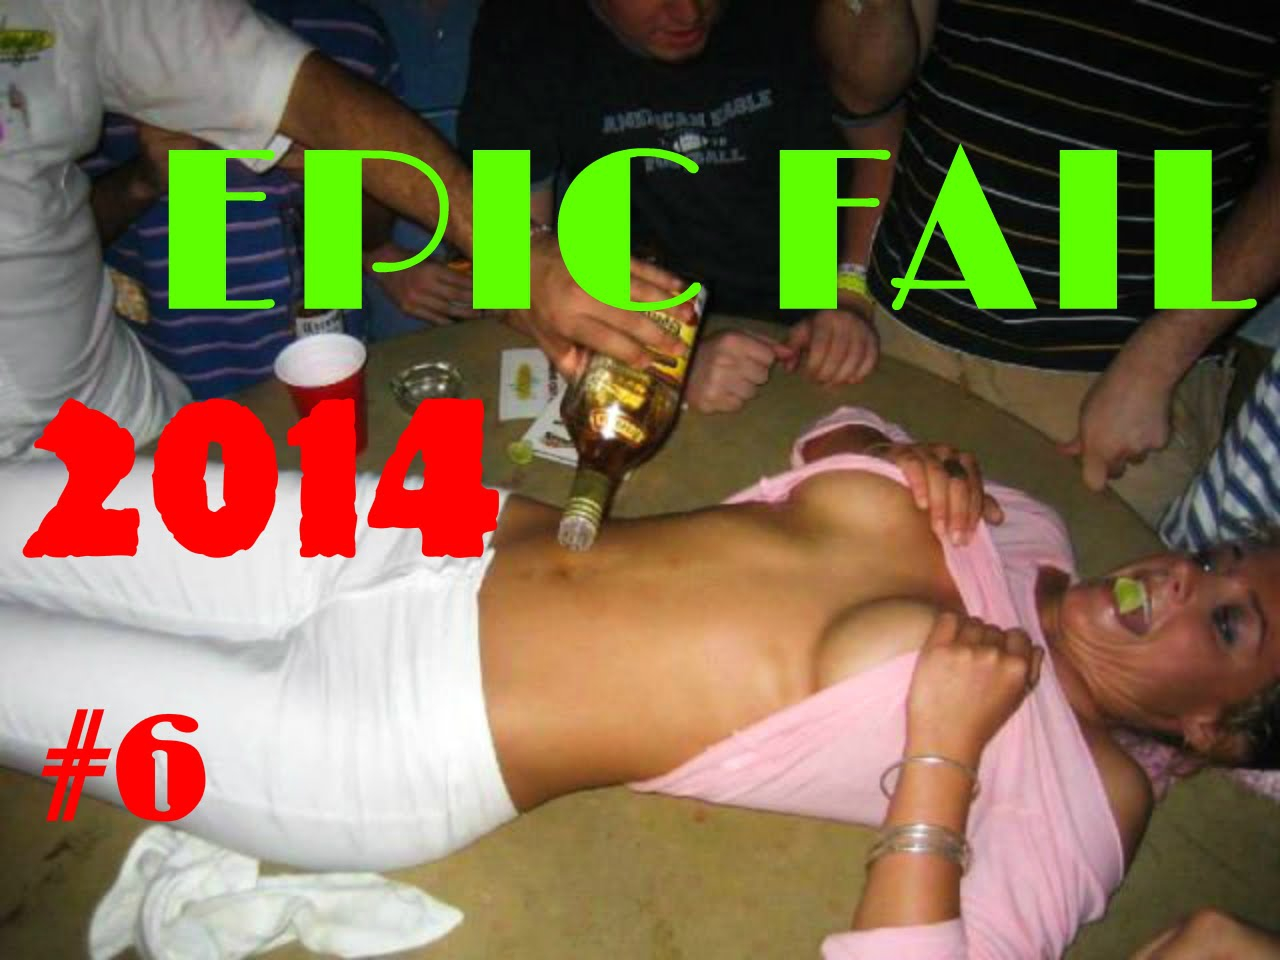 BEST EPIC FAIL /Win Compilation/ FAILS August 2014 #6